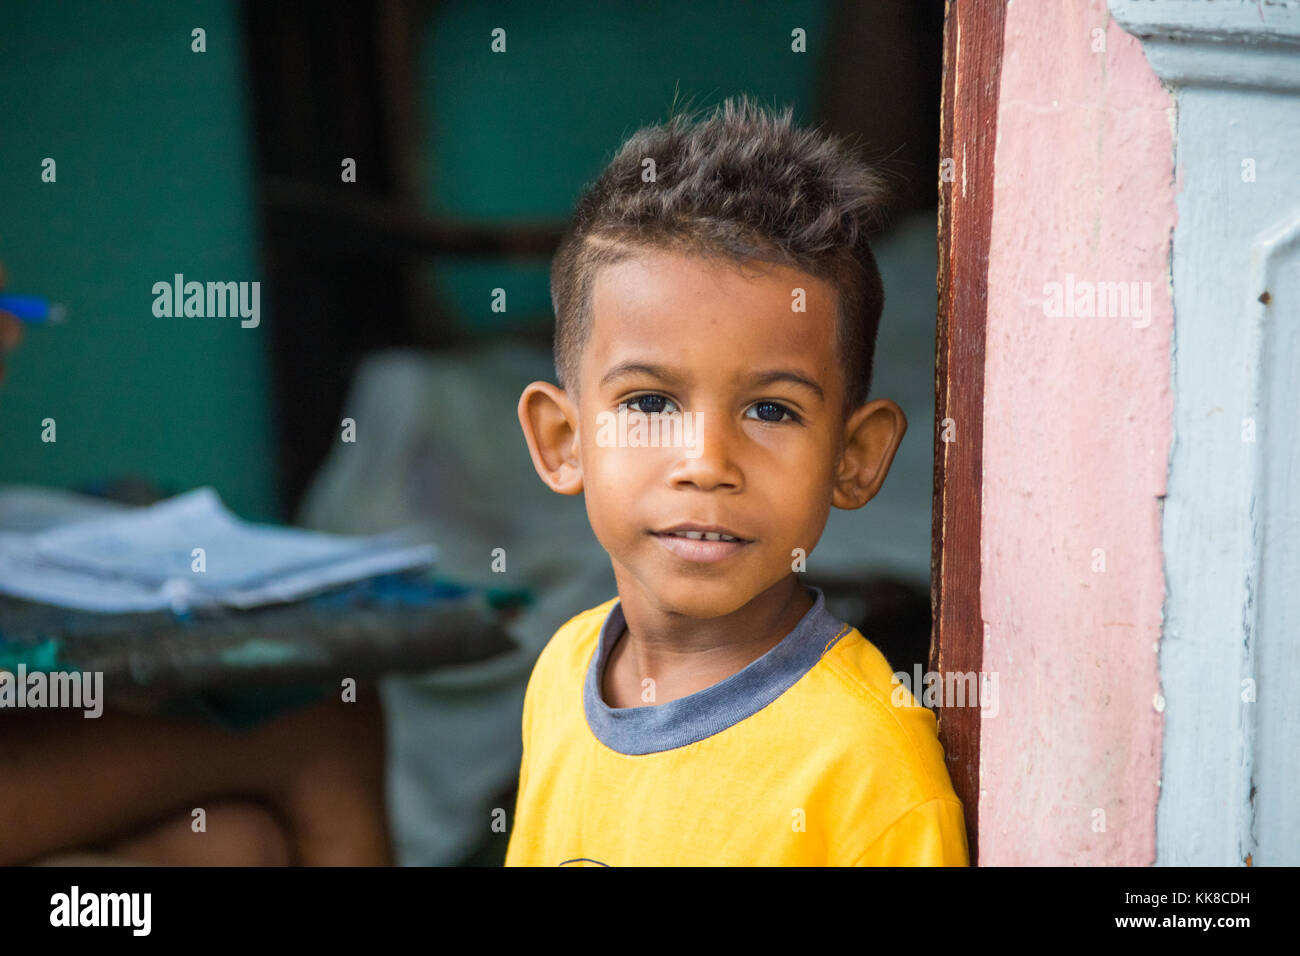 Cuban boy in Havana, Cuba Stock Photo